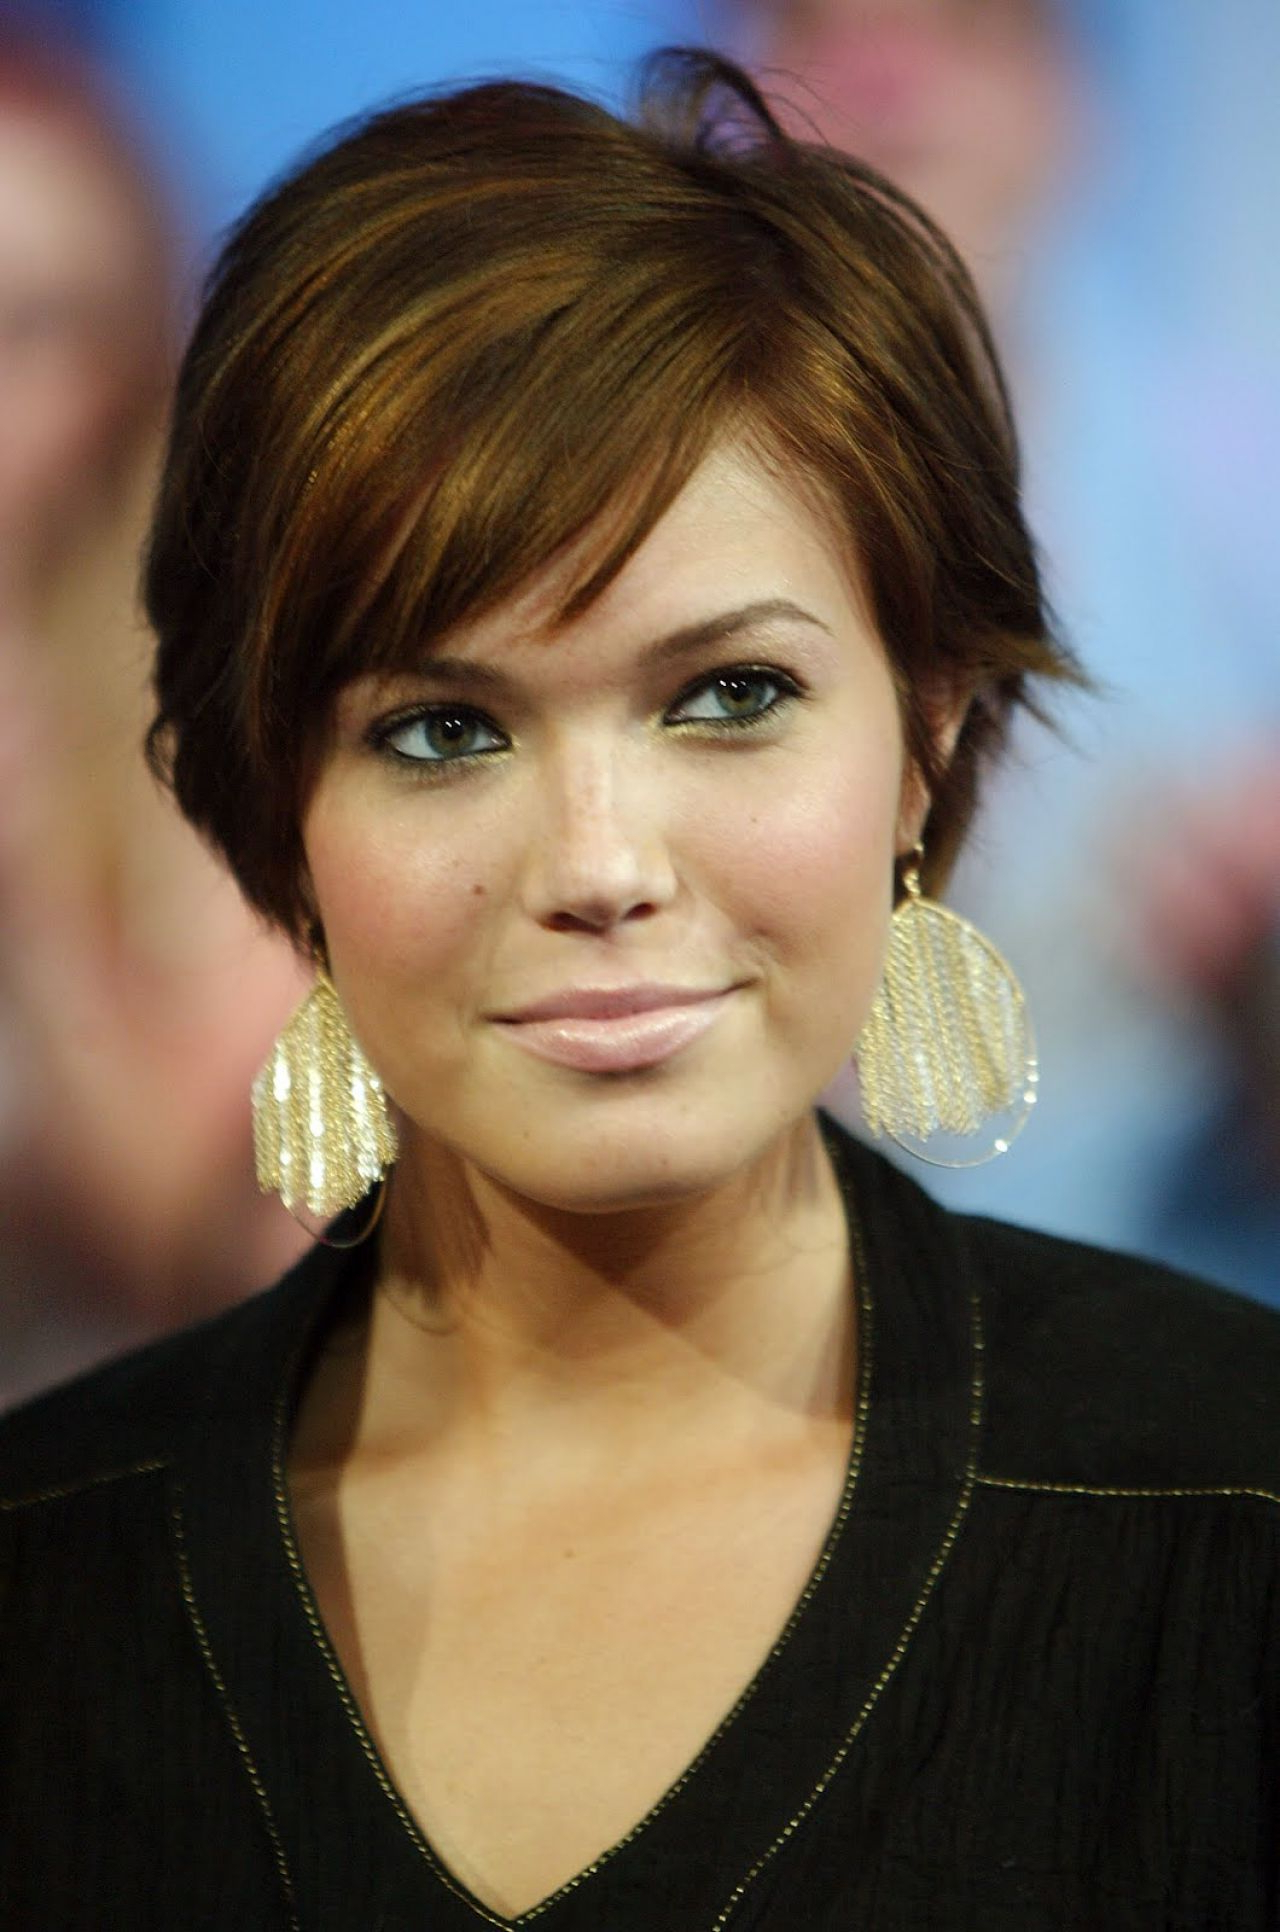 Short Hairstyles For Square Faces Female – Google Search In Short Hairstyles For Wide Faces (View 21 of 25)